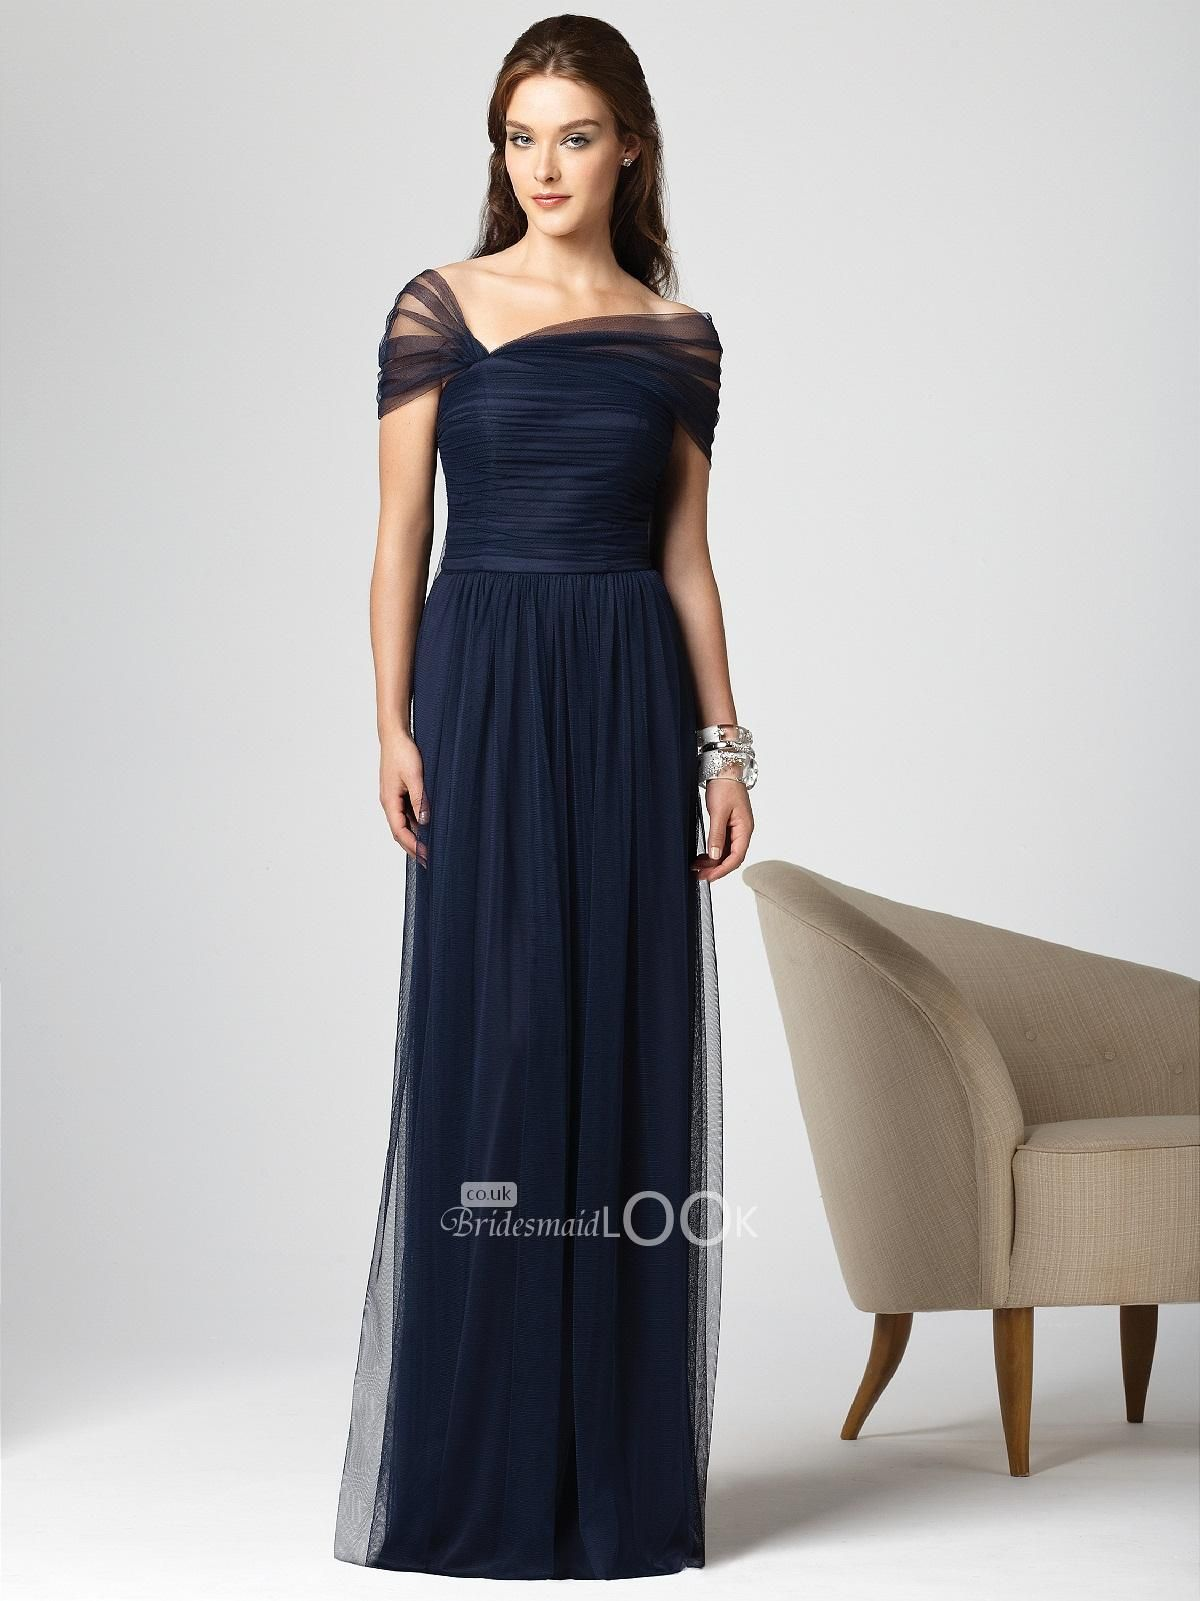 Patterns for bridesmaids dresses google search alice in